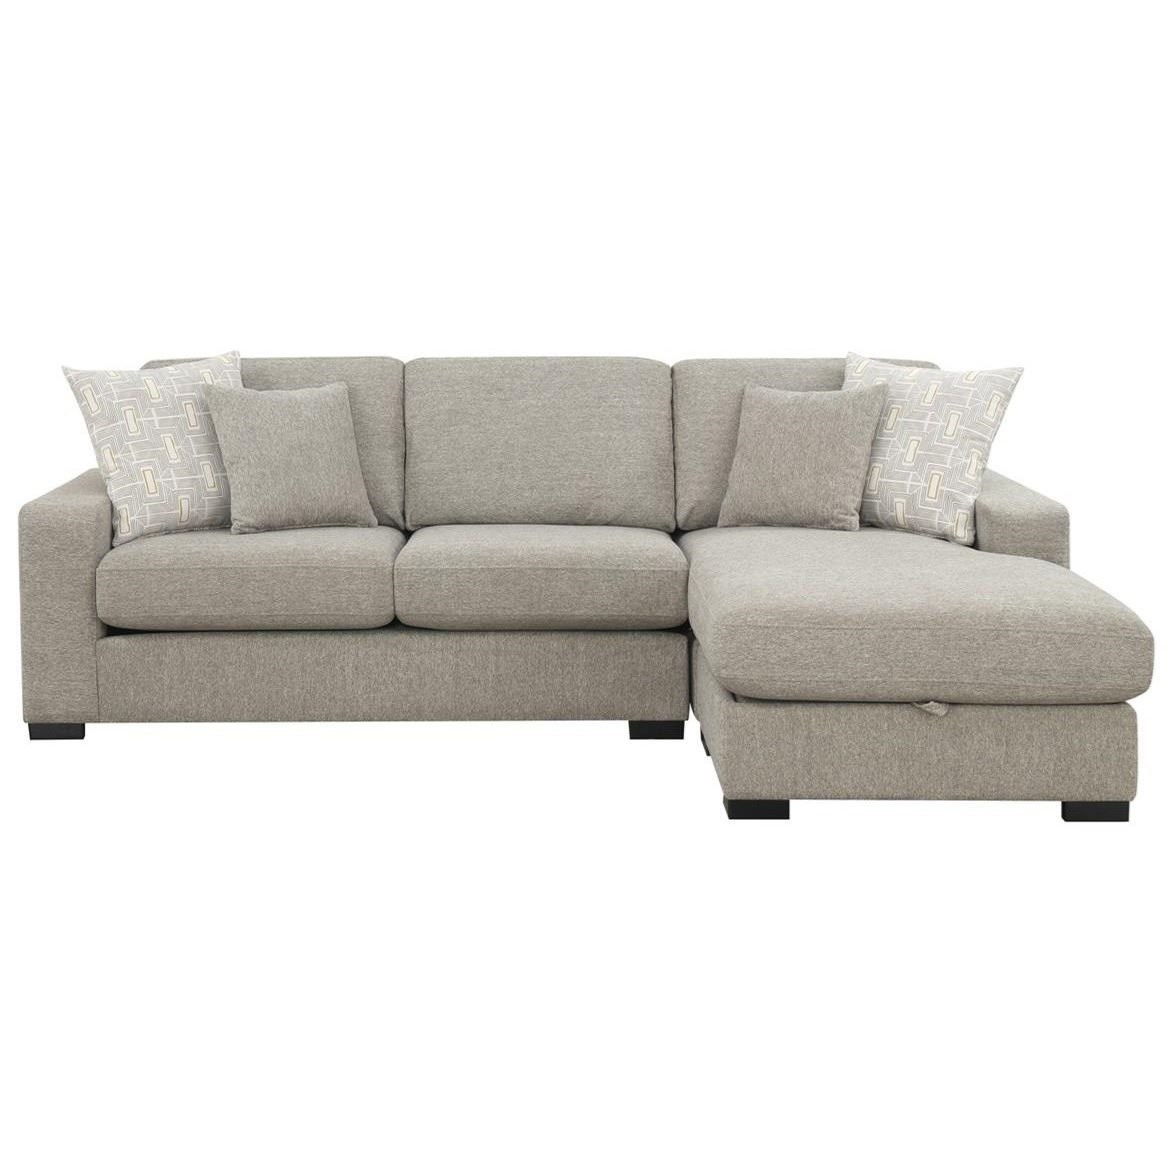 3-Seat Chaise Sectional w/ Storage